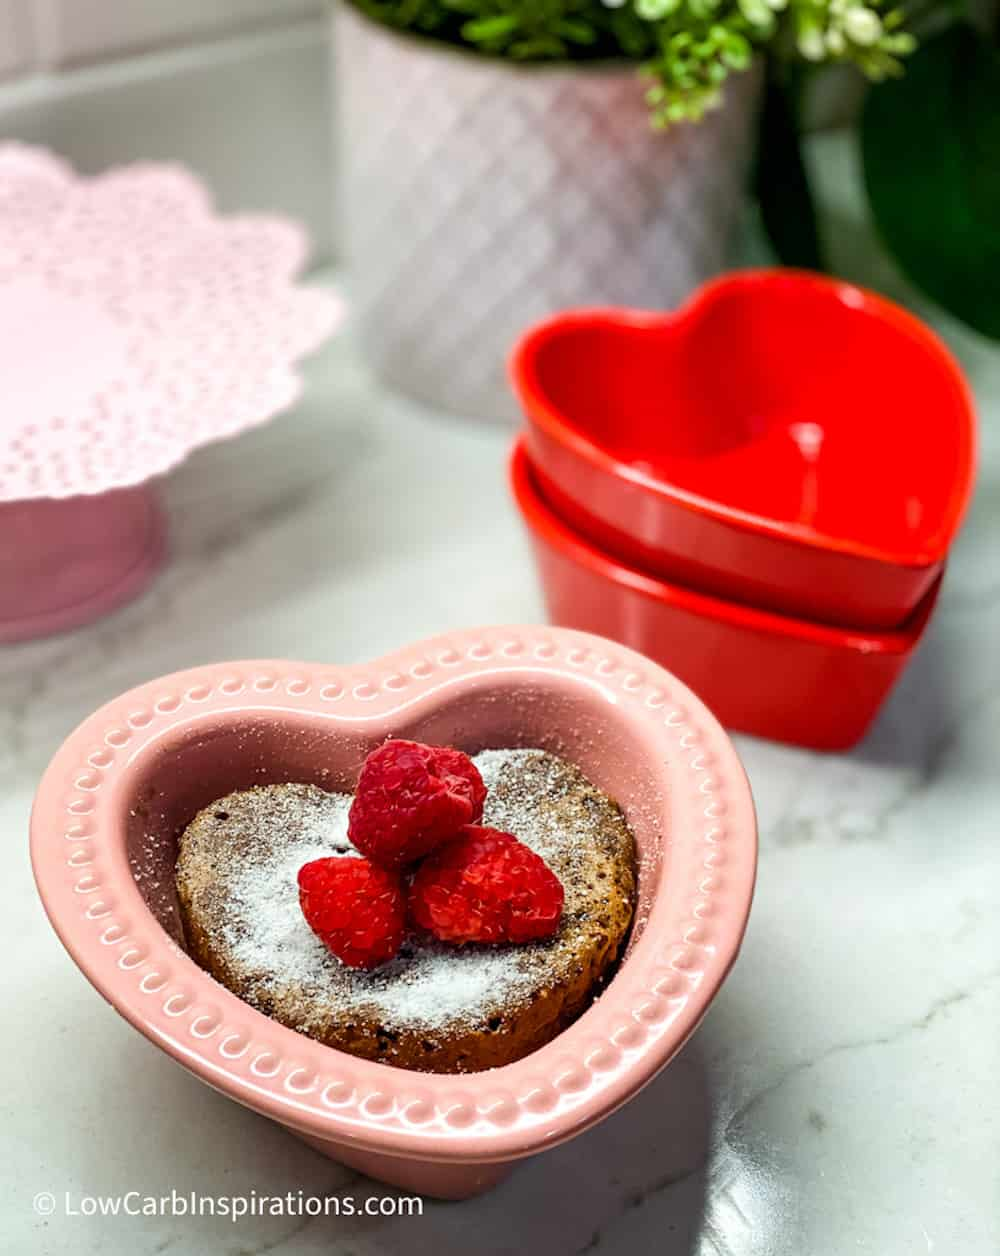 Heart shaped chocolate cake dusted with sweetener and topped with Raspberries served in a pink cake pan.